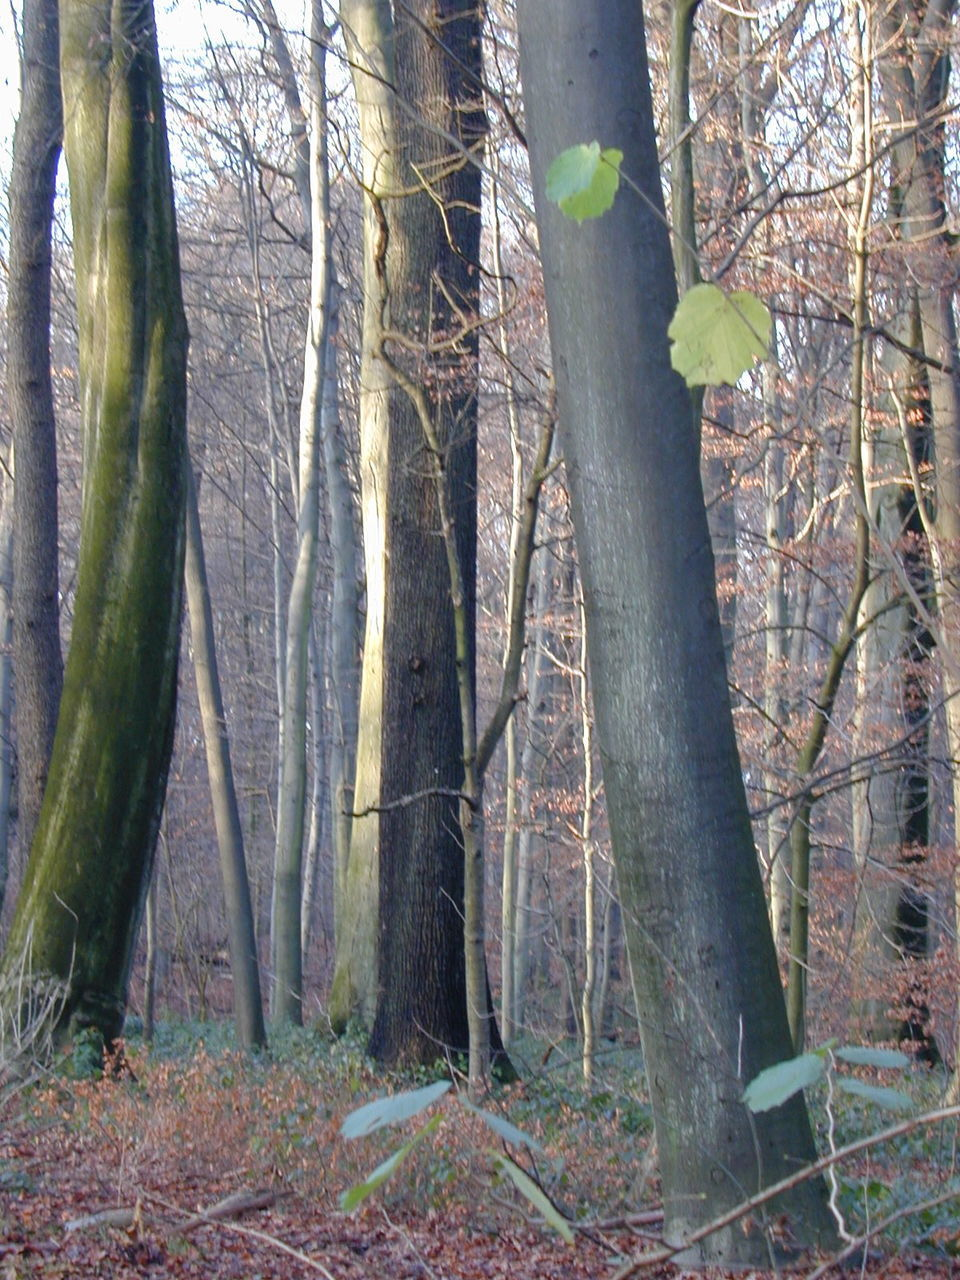 forest, nature, tree trunk, tree, no people, day, tranquility, growth, outdoors, branch, beauty in nature